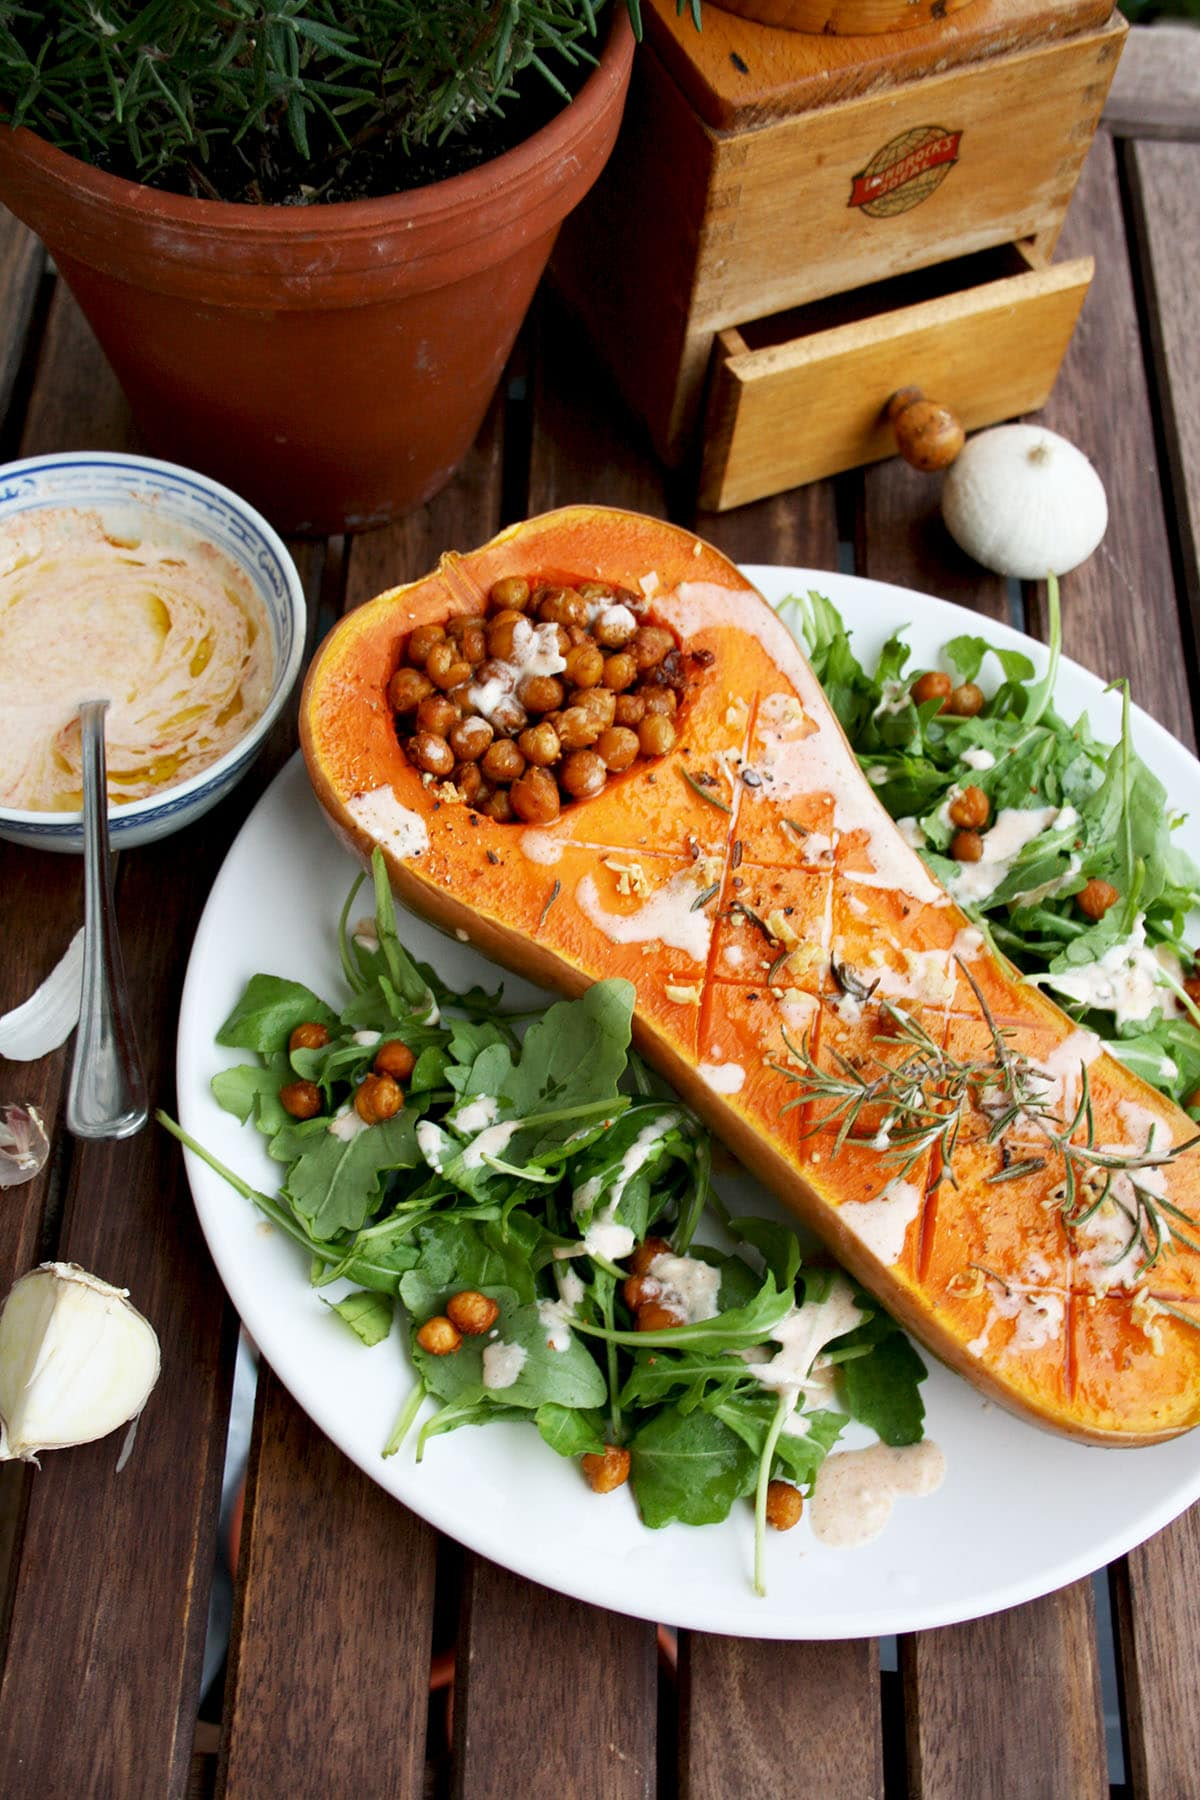 Roasted butternut squash with crunchy chick peas and smoked paprika tofu dip